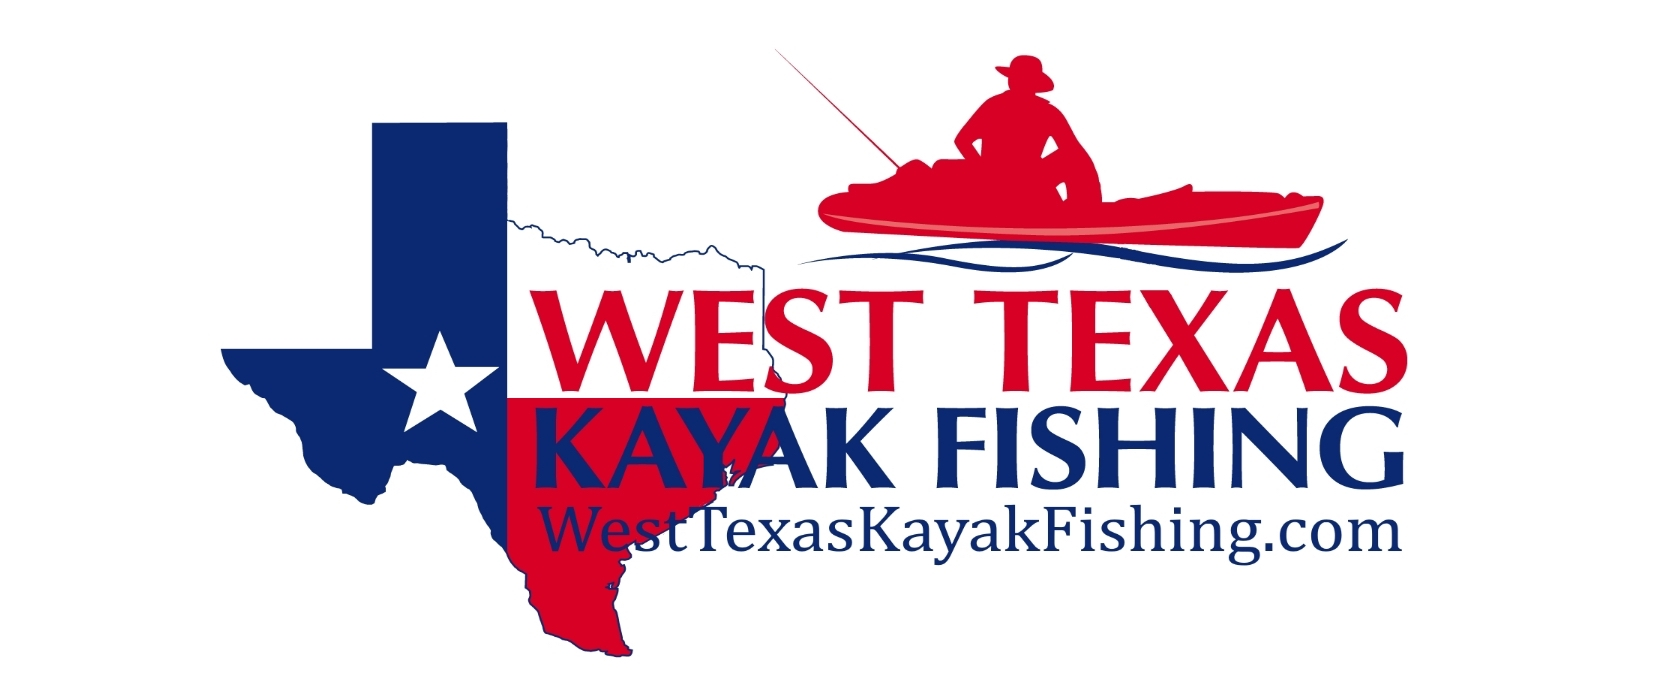 West Texas Kayak Fishing - Banner